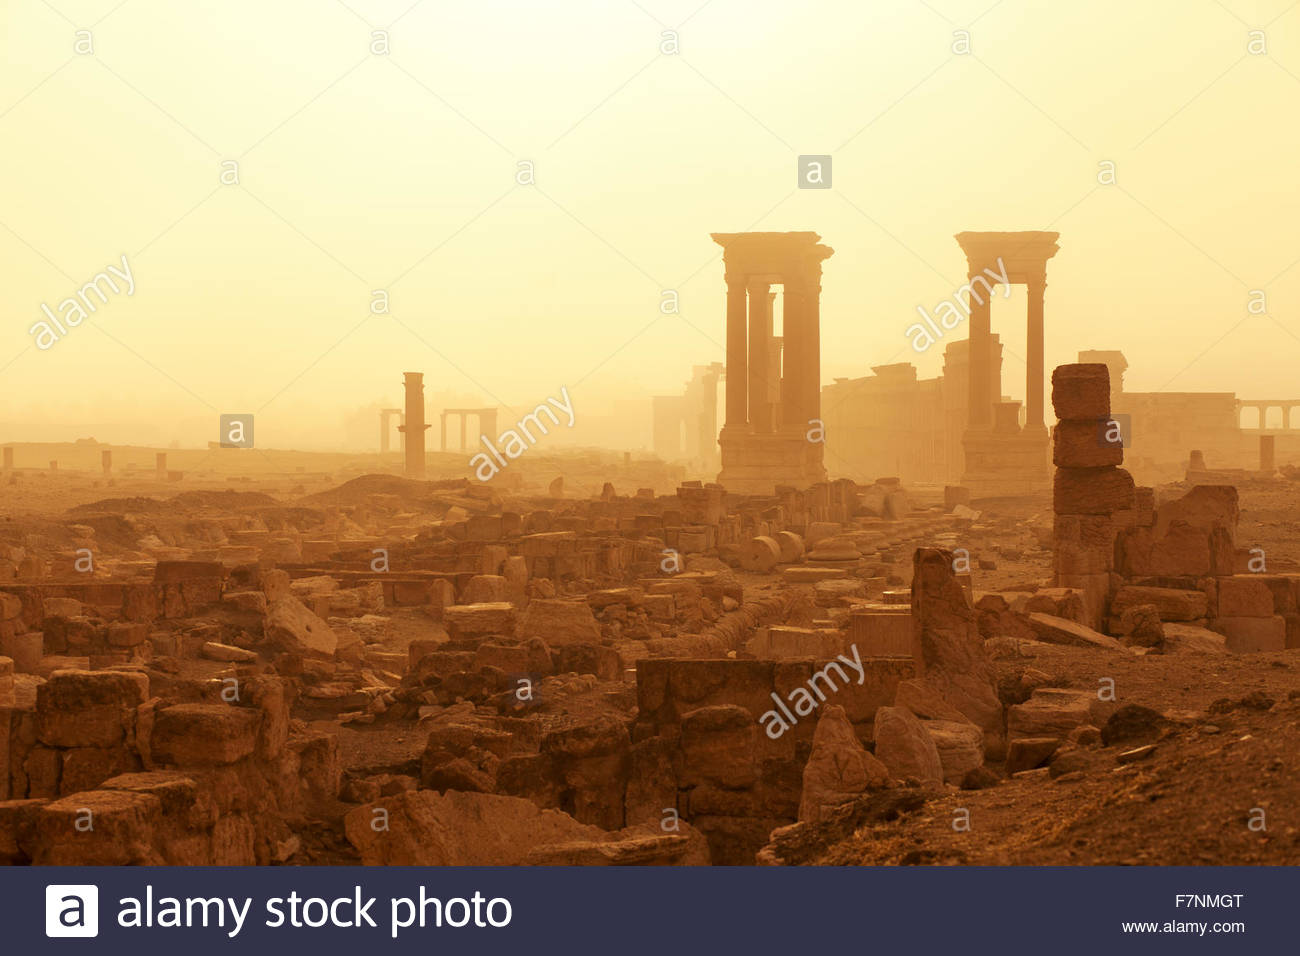 Syria, Homs Governorate, Palmyra,Temple of Bel - Stock Image